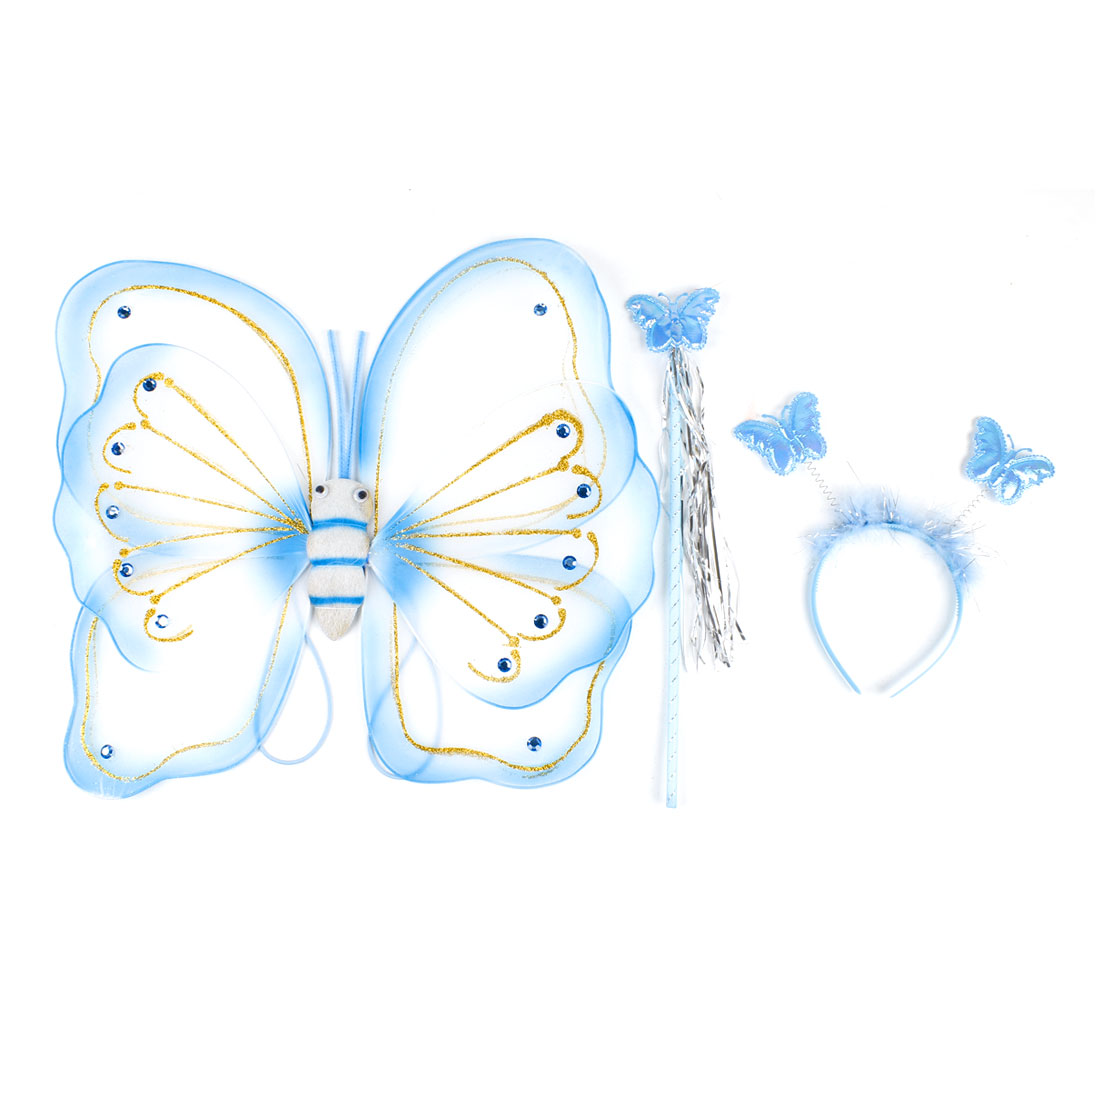 3 in 1 Dress up Costume Glittery Decor Butterfly Wing Stick Hair Bow Blue